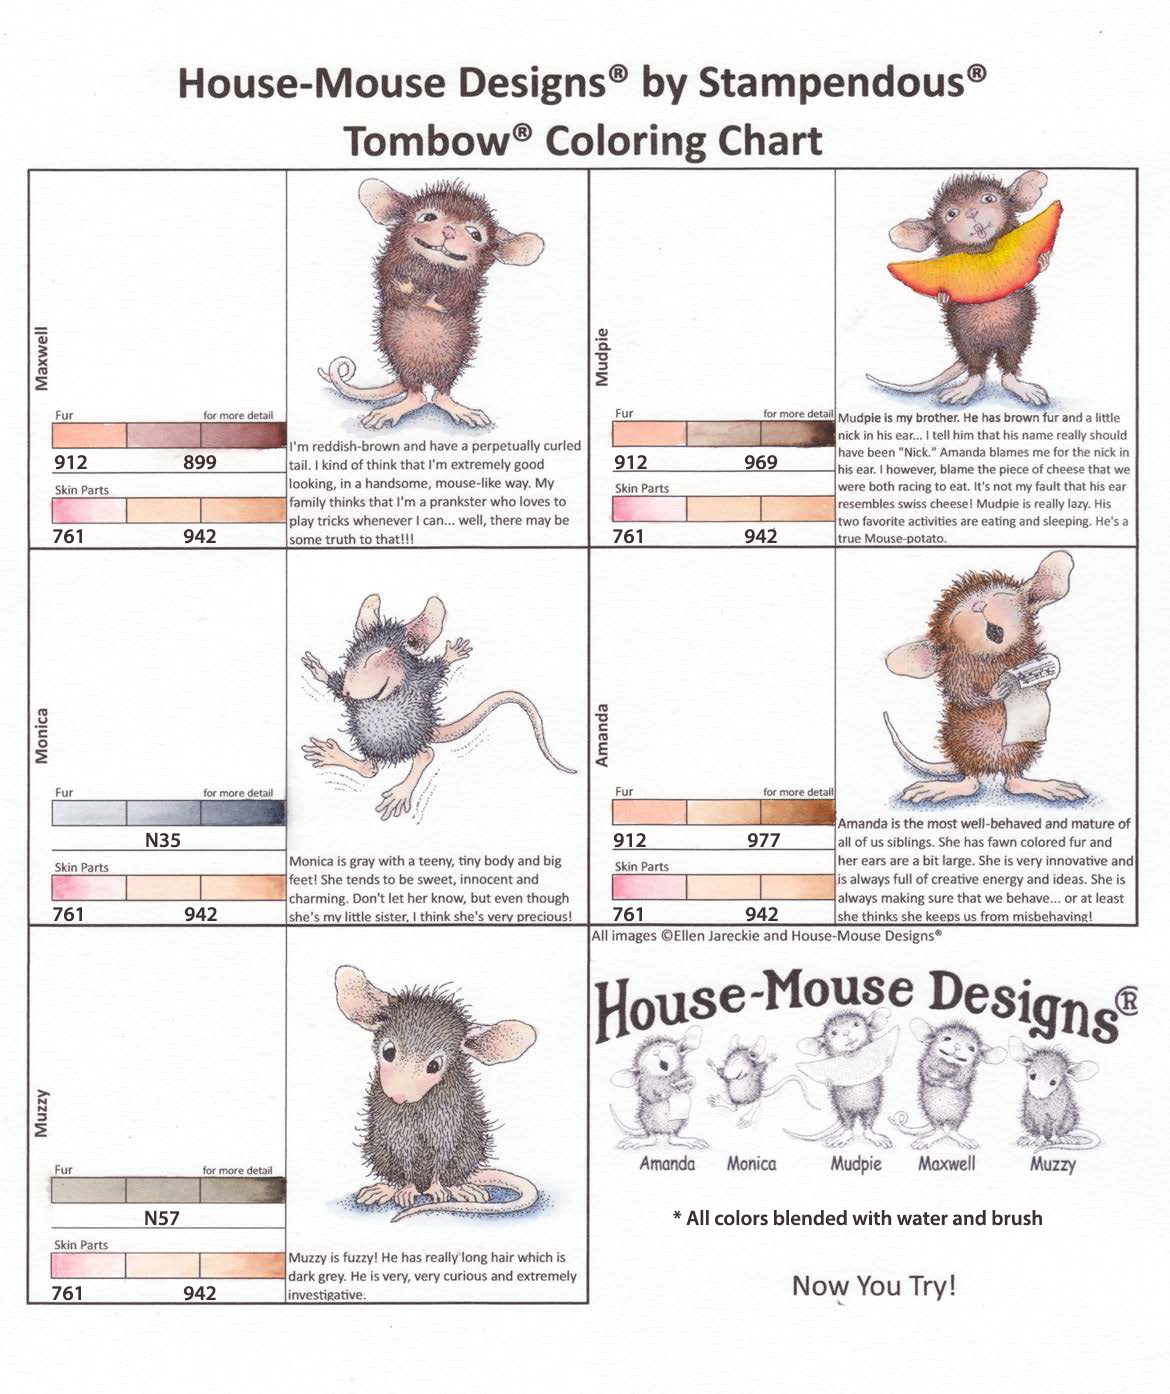 house mouse coloring chart tombow markers